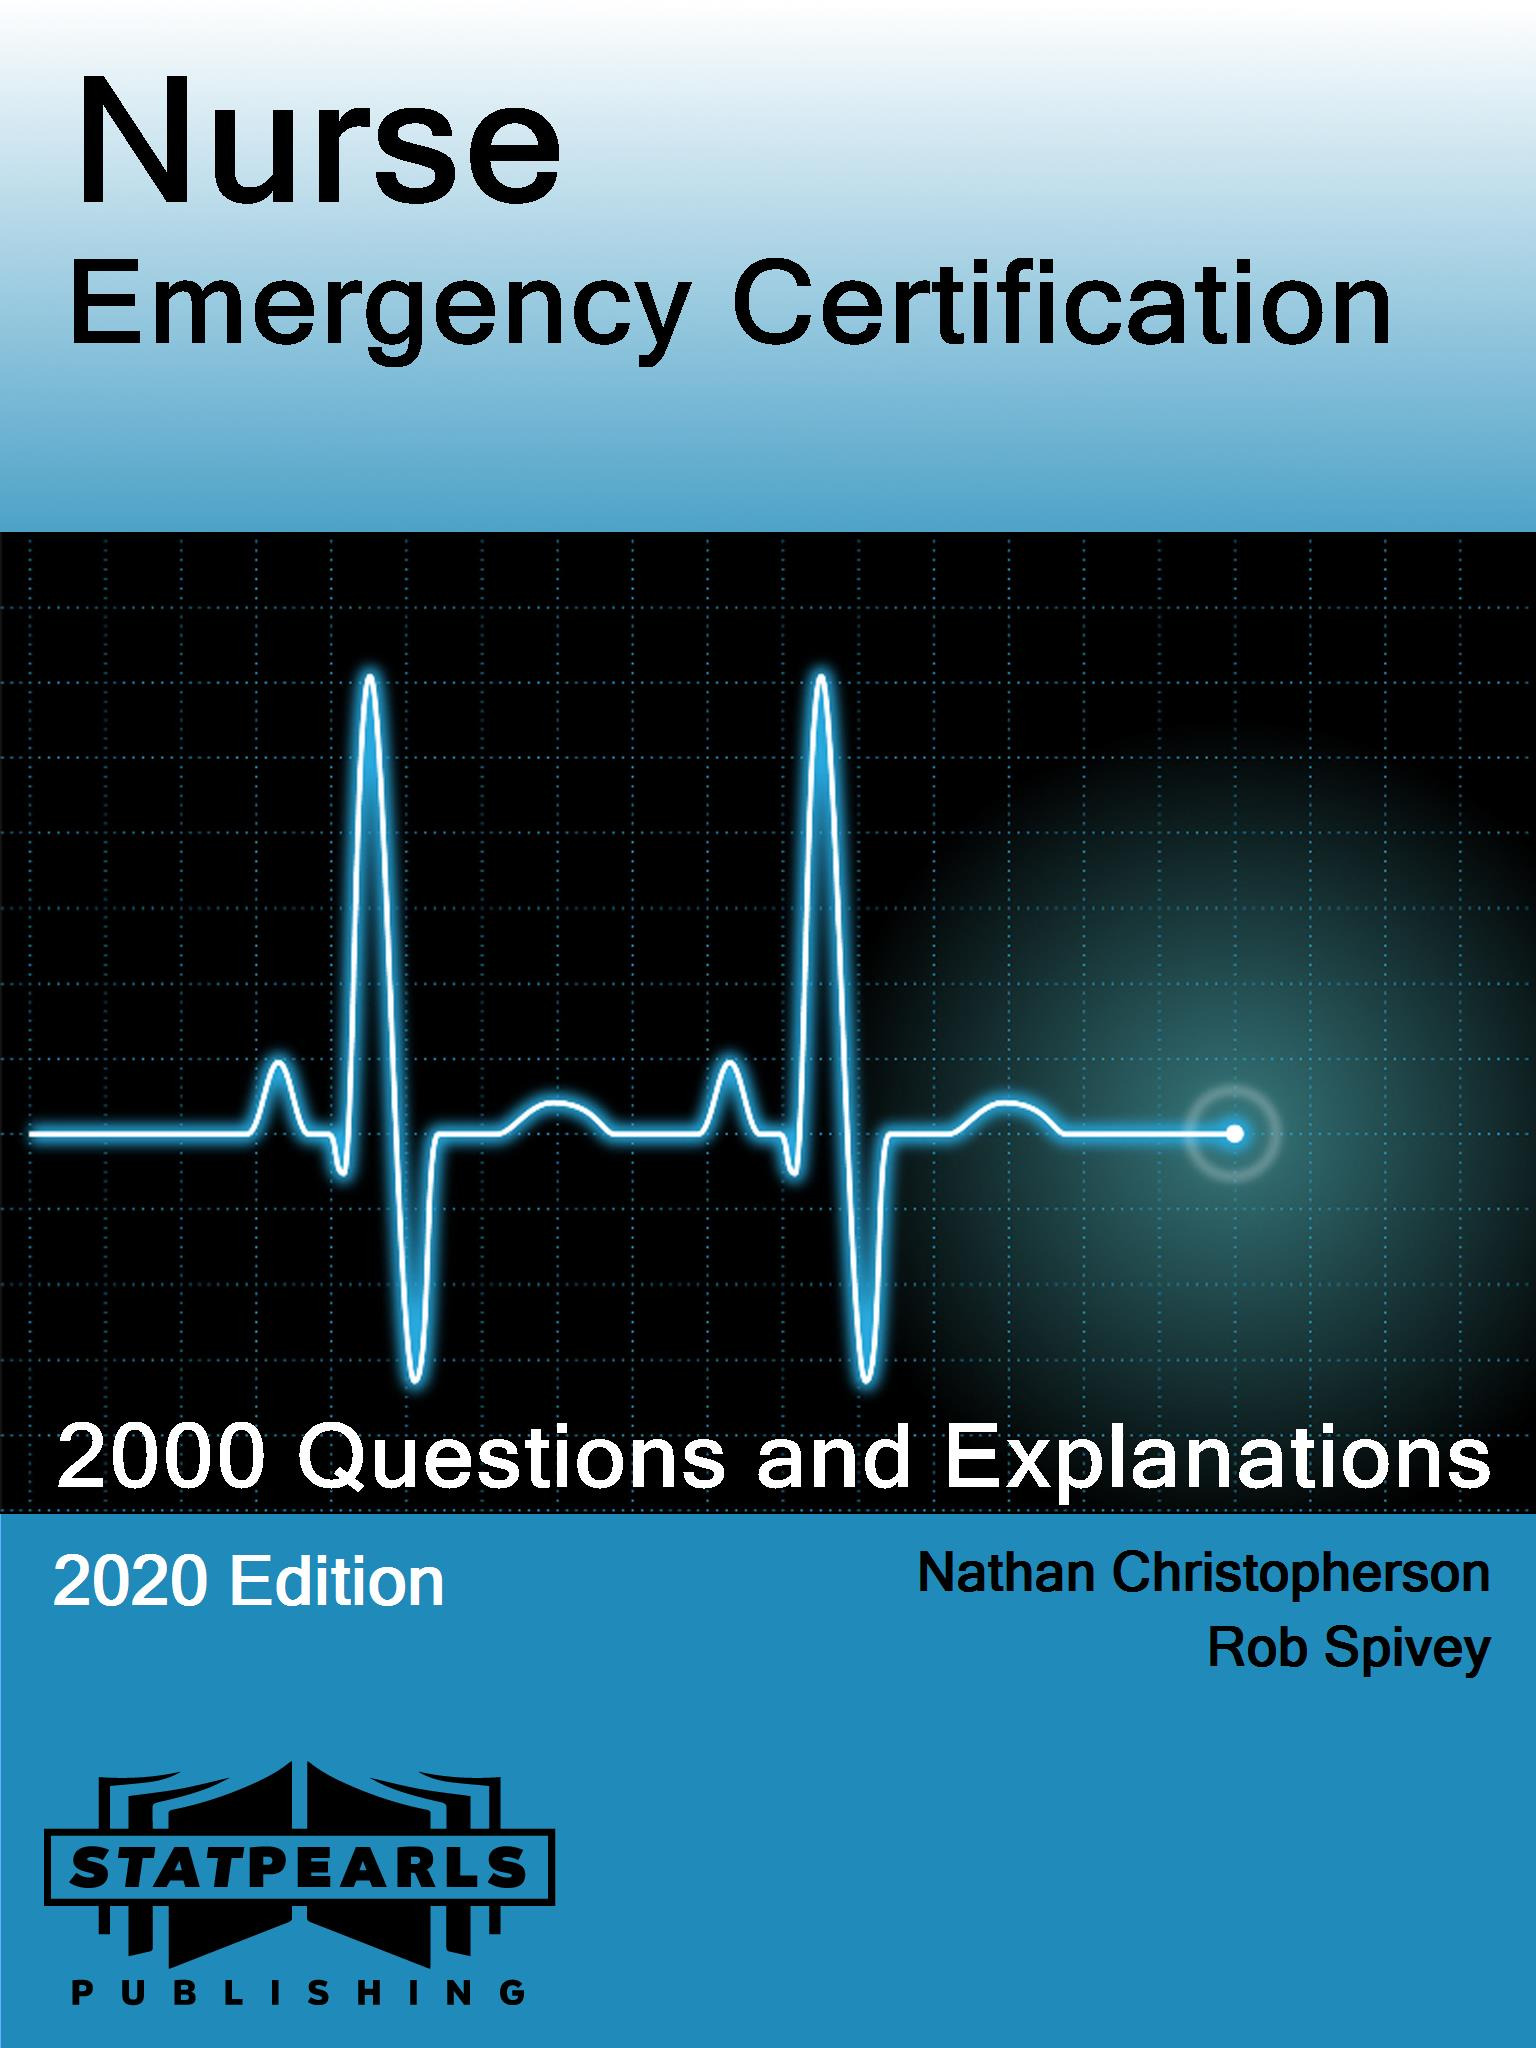 Nurse Emergency Certification